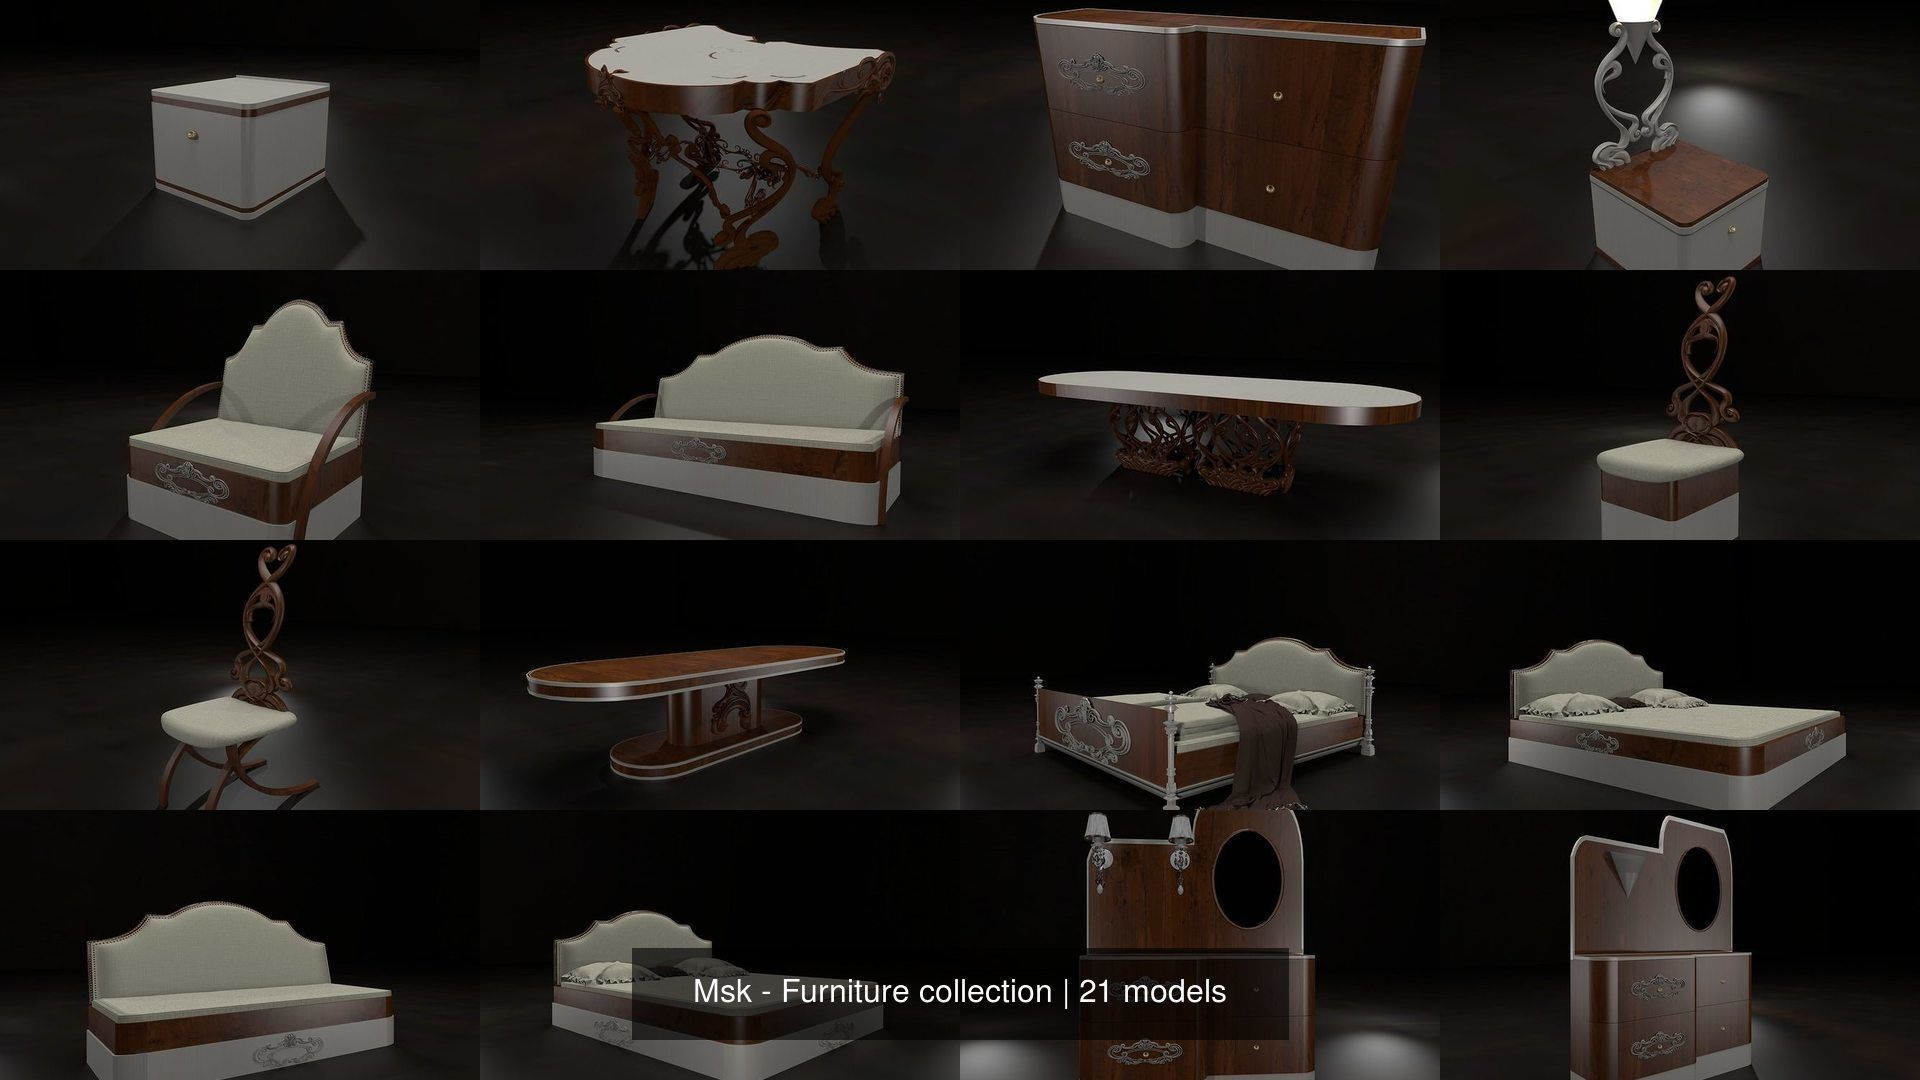 Msk - Furniture collection